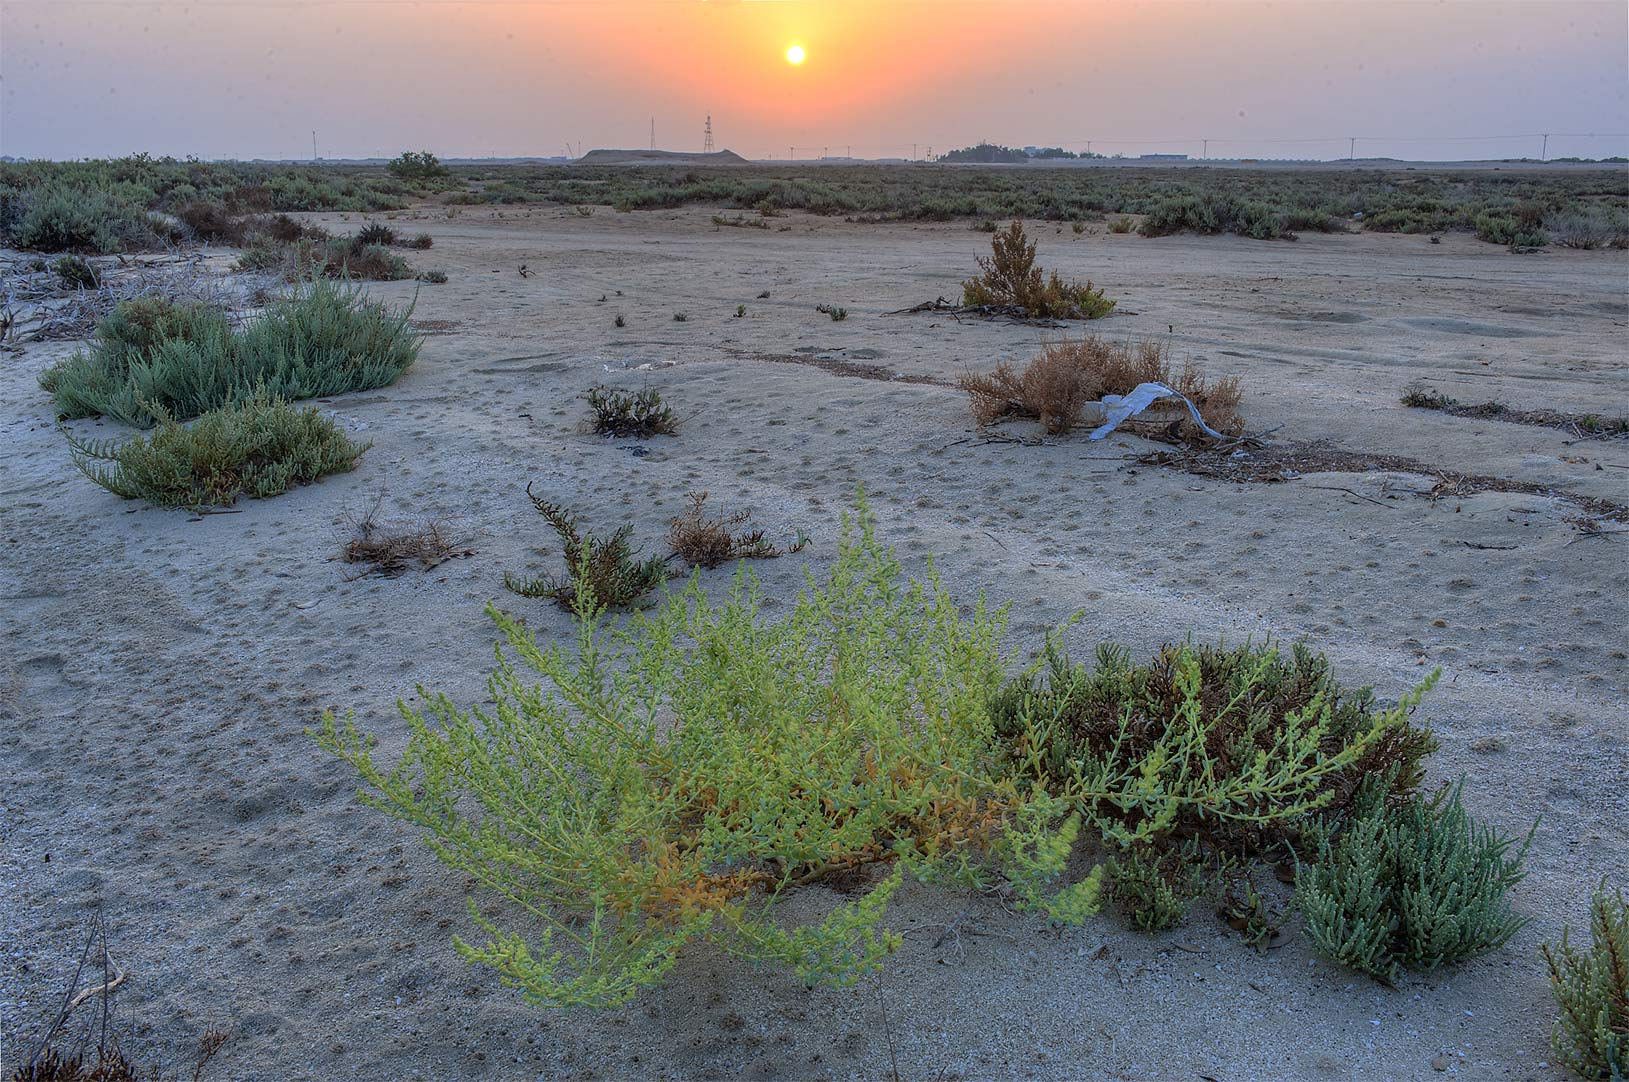 Plant of Bienertia sinuspersici at sunrise near...Jazirat Bin Ghanim). Al Khor, Qatar